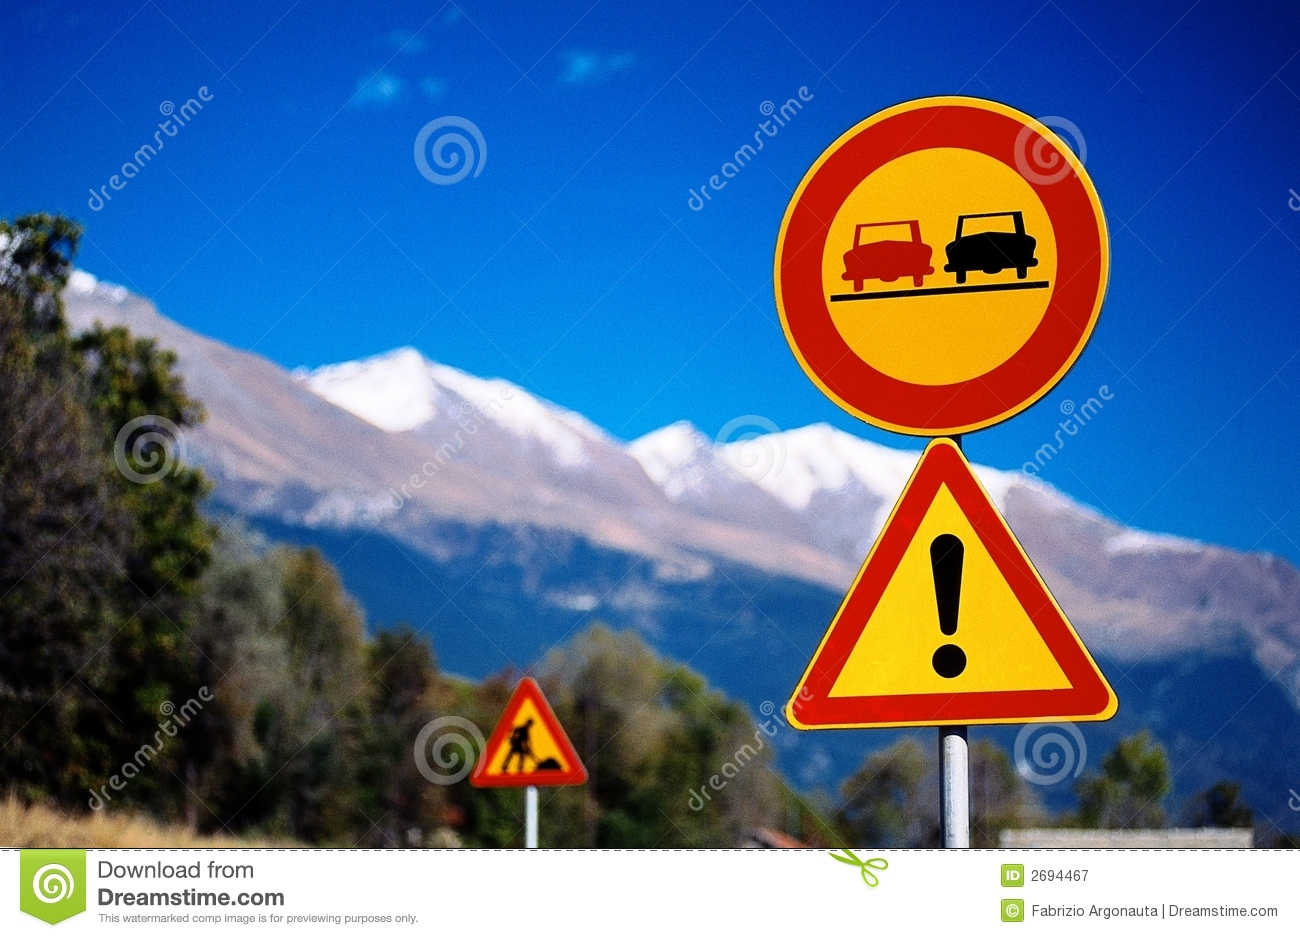 Mountain traffic signs